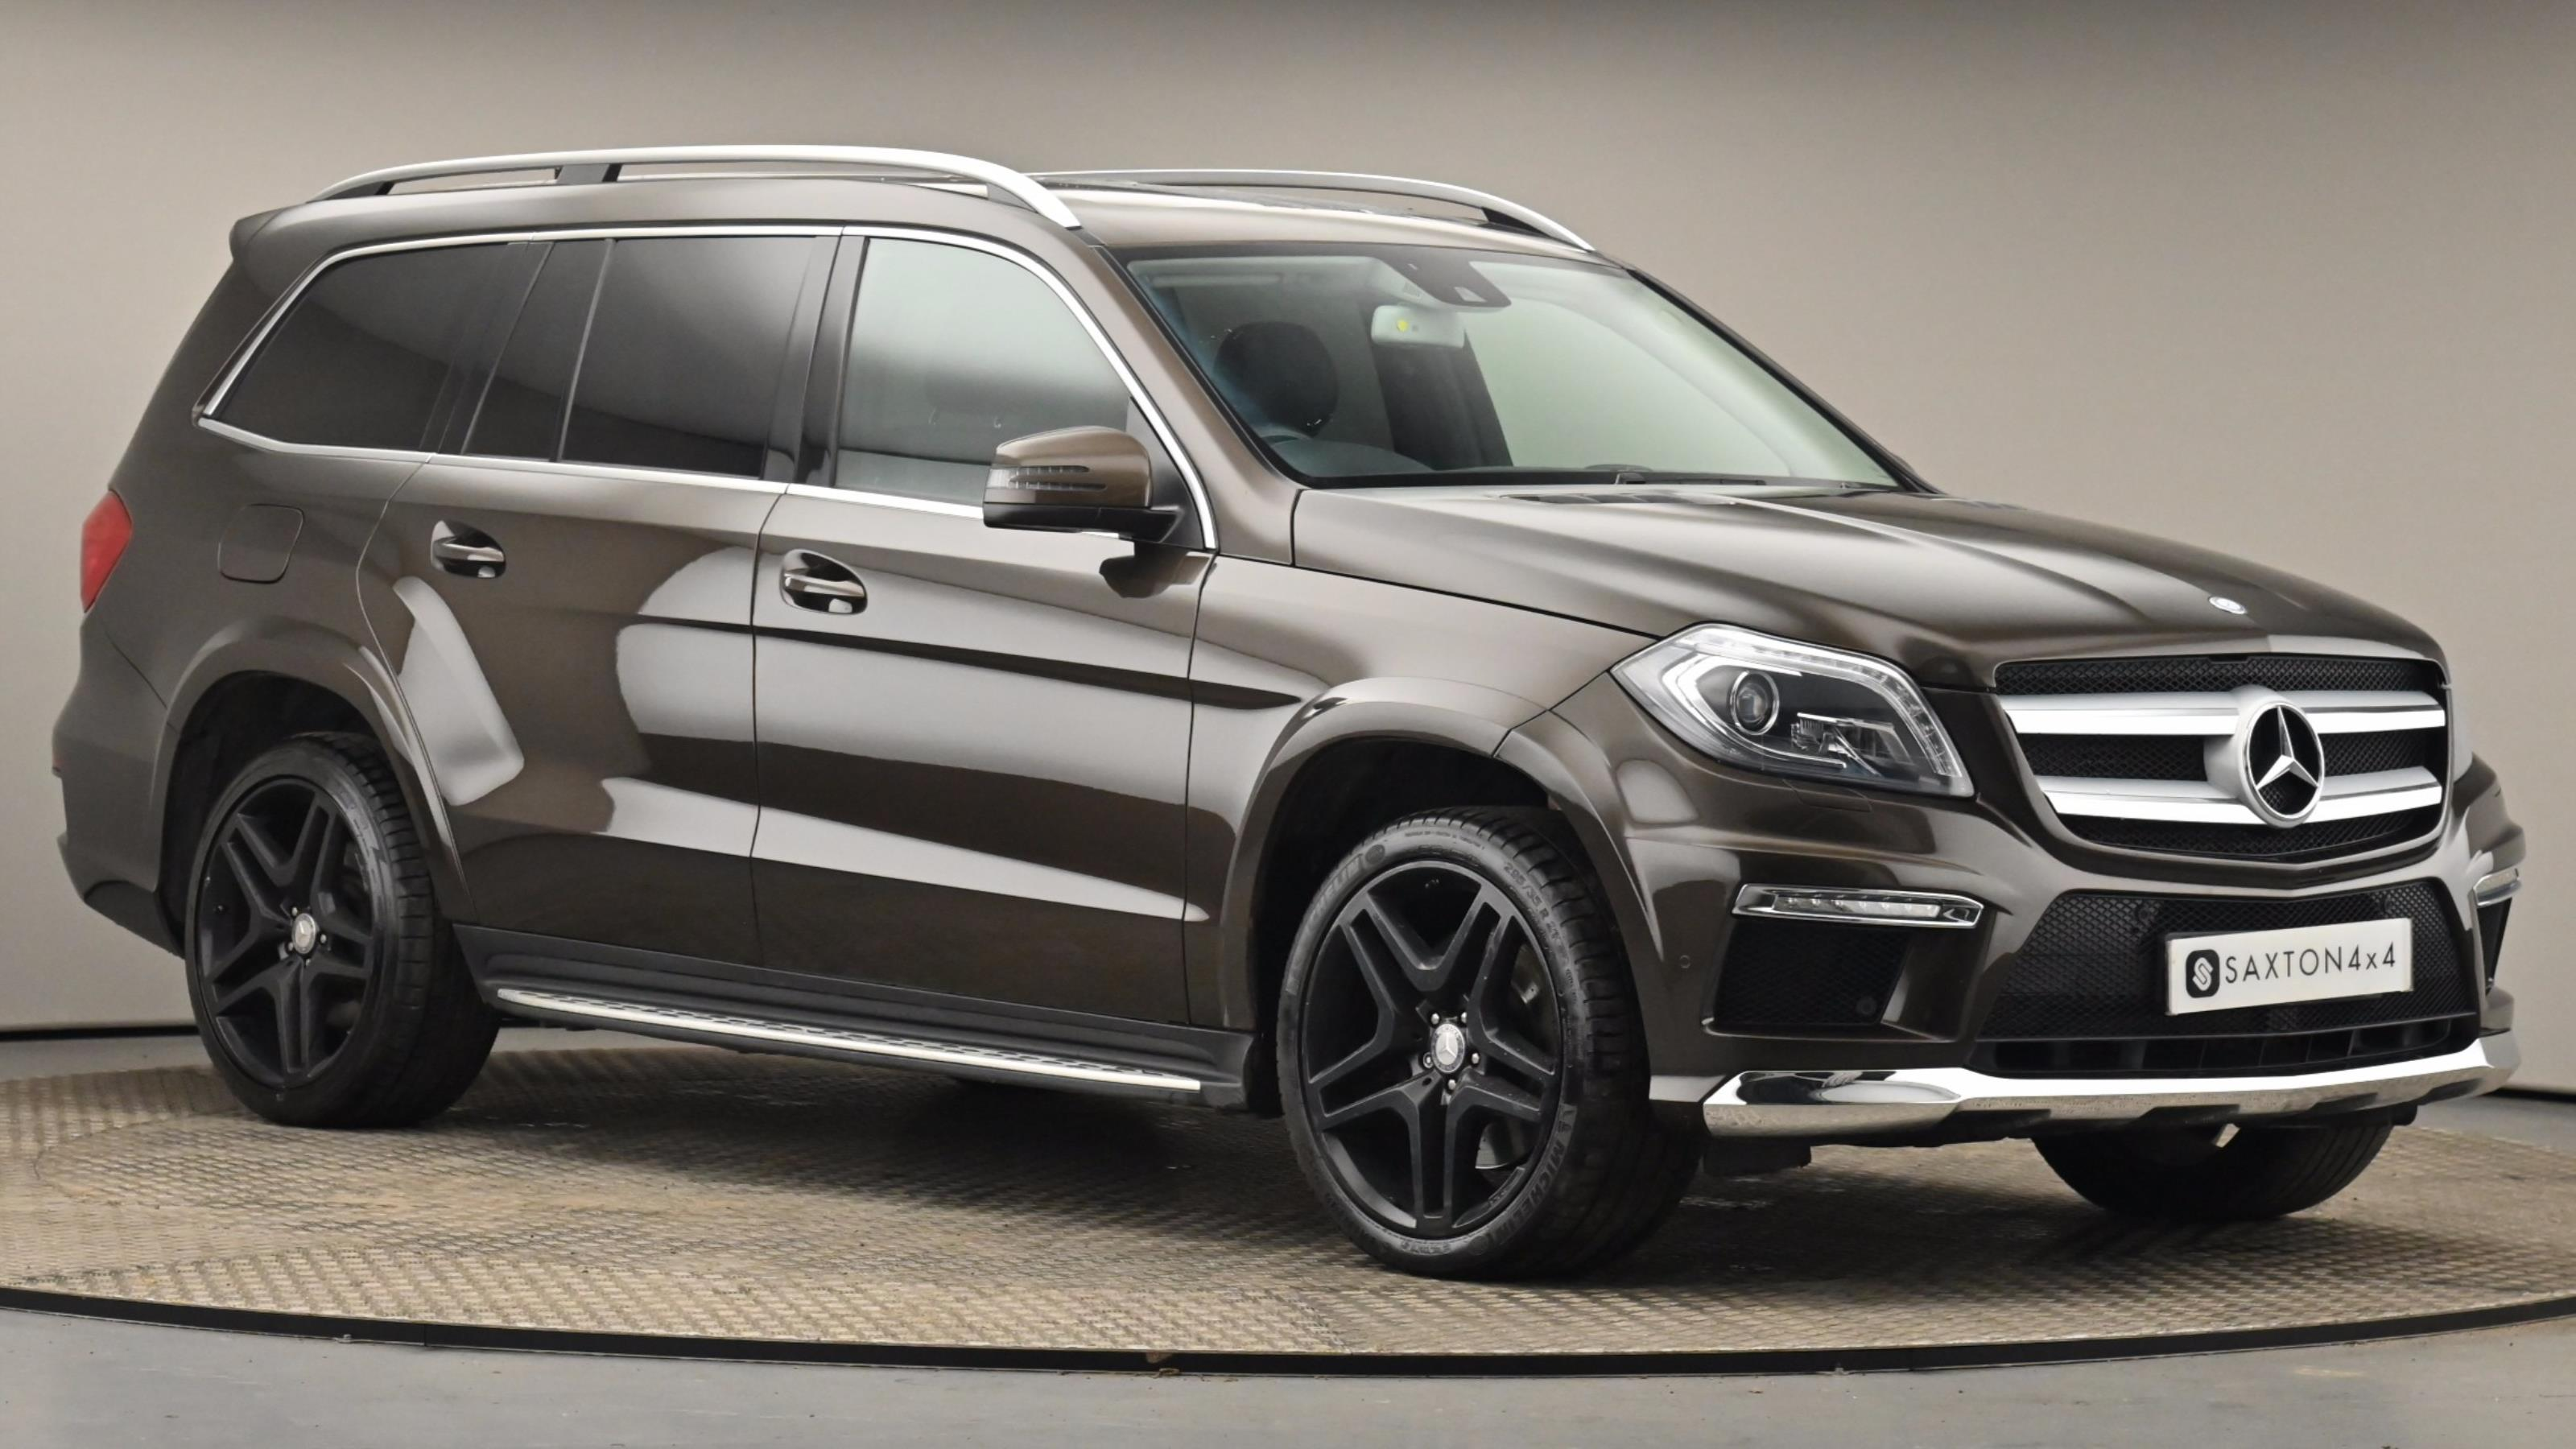 Used 2015 Mercedes-Benz GL CLASS GL350 BlueTEC AMG Sport 5dr Tip Auto BROWN at Saxton4x4